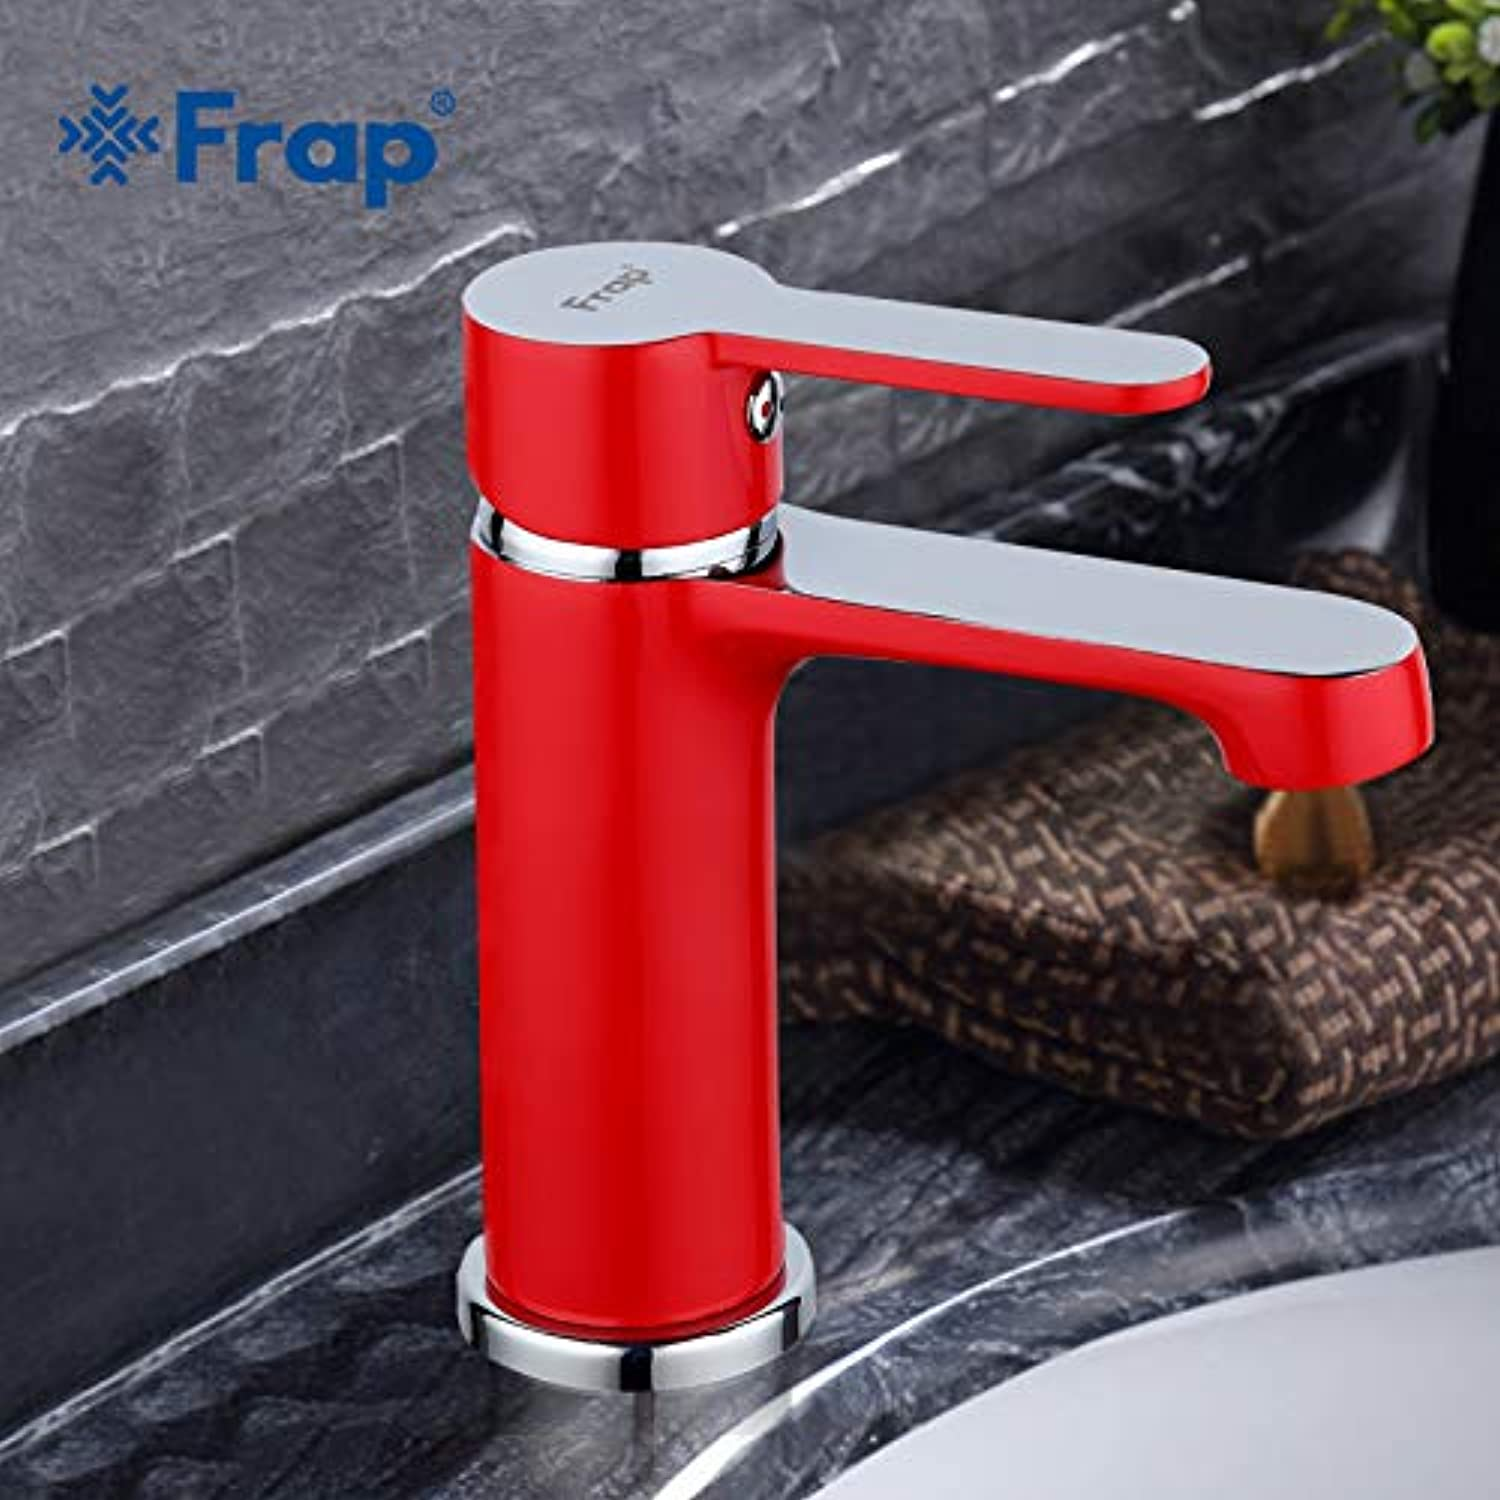 U-Enjoy Chandelier Fashion Style Innovative Home Basin Top Quality Faucet Bath Cold and Hot Taps Red Bathroom Water Mixer F1043 Free Shipping